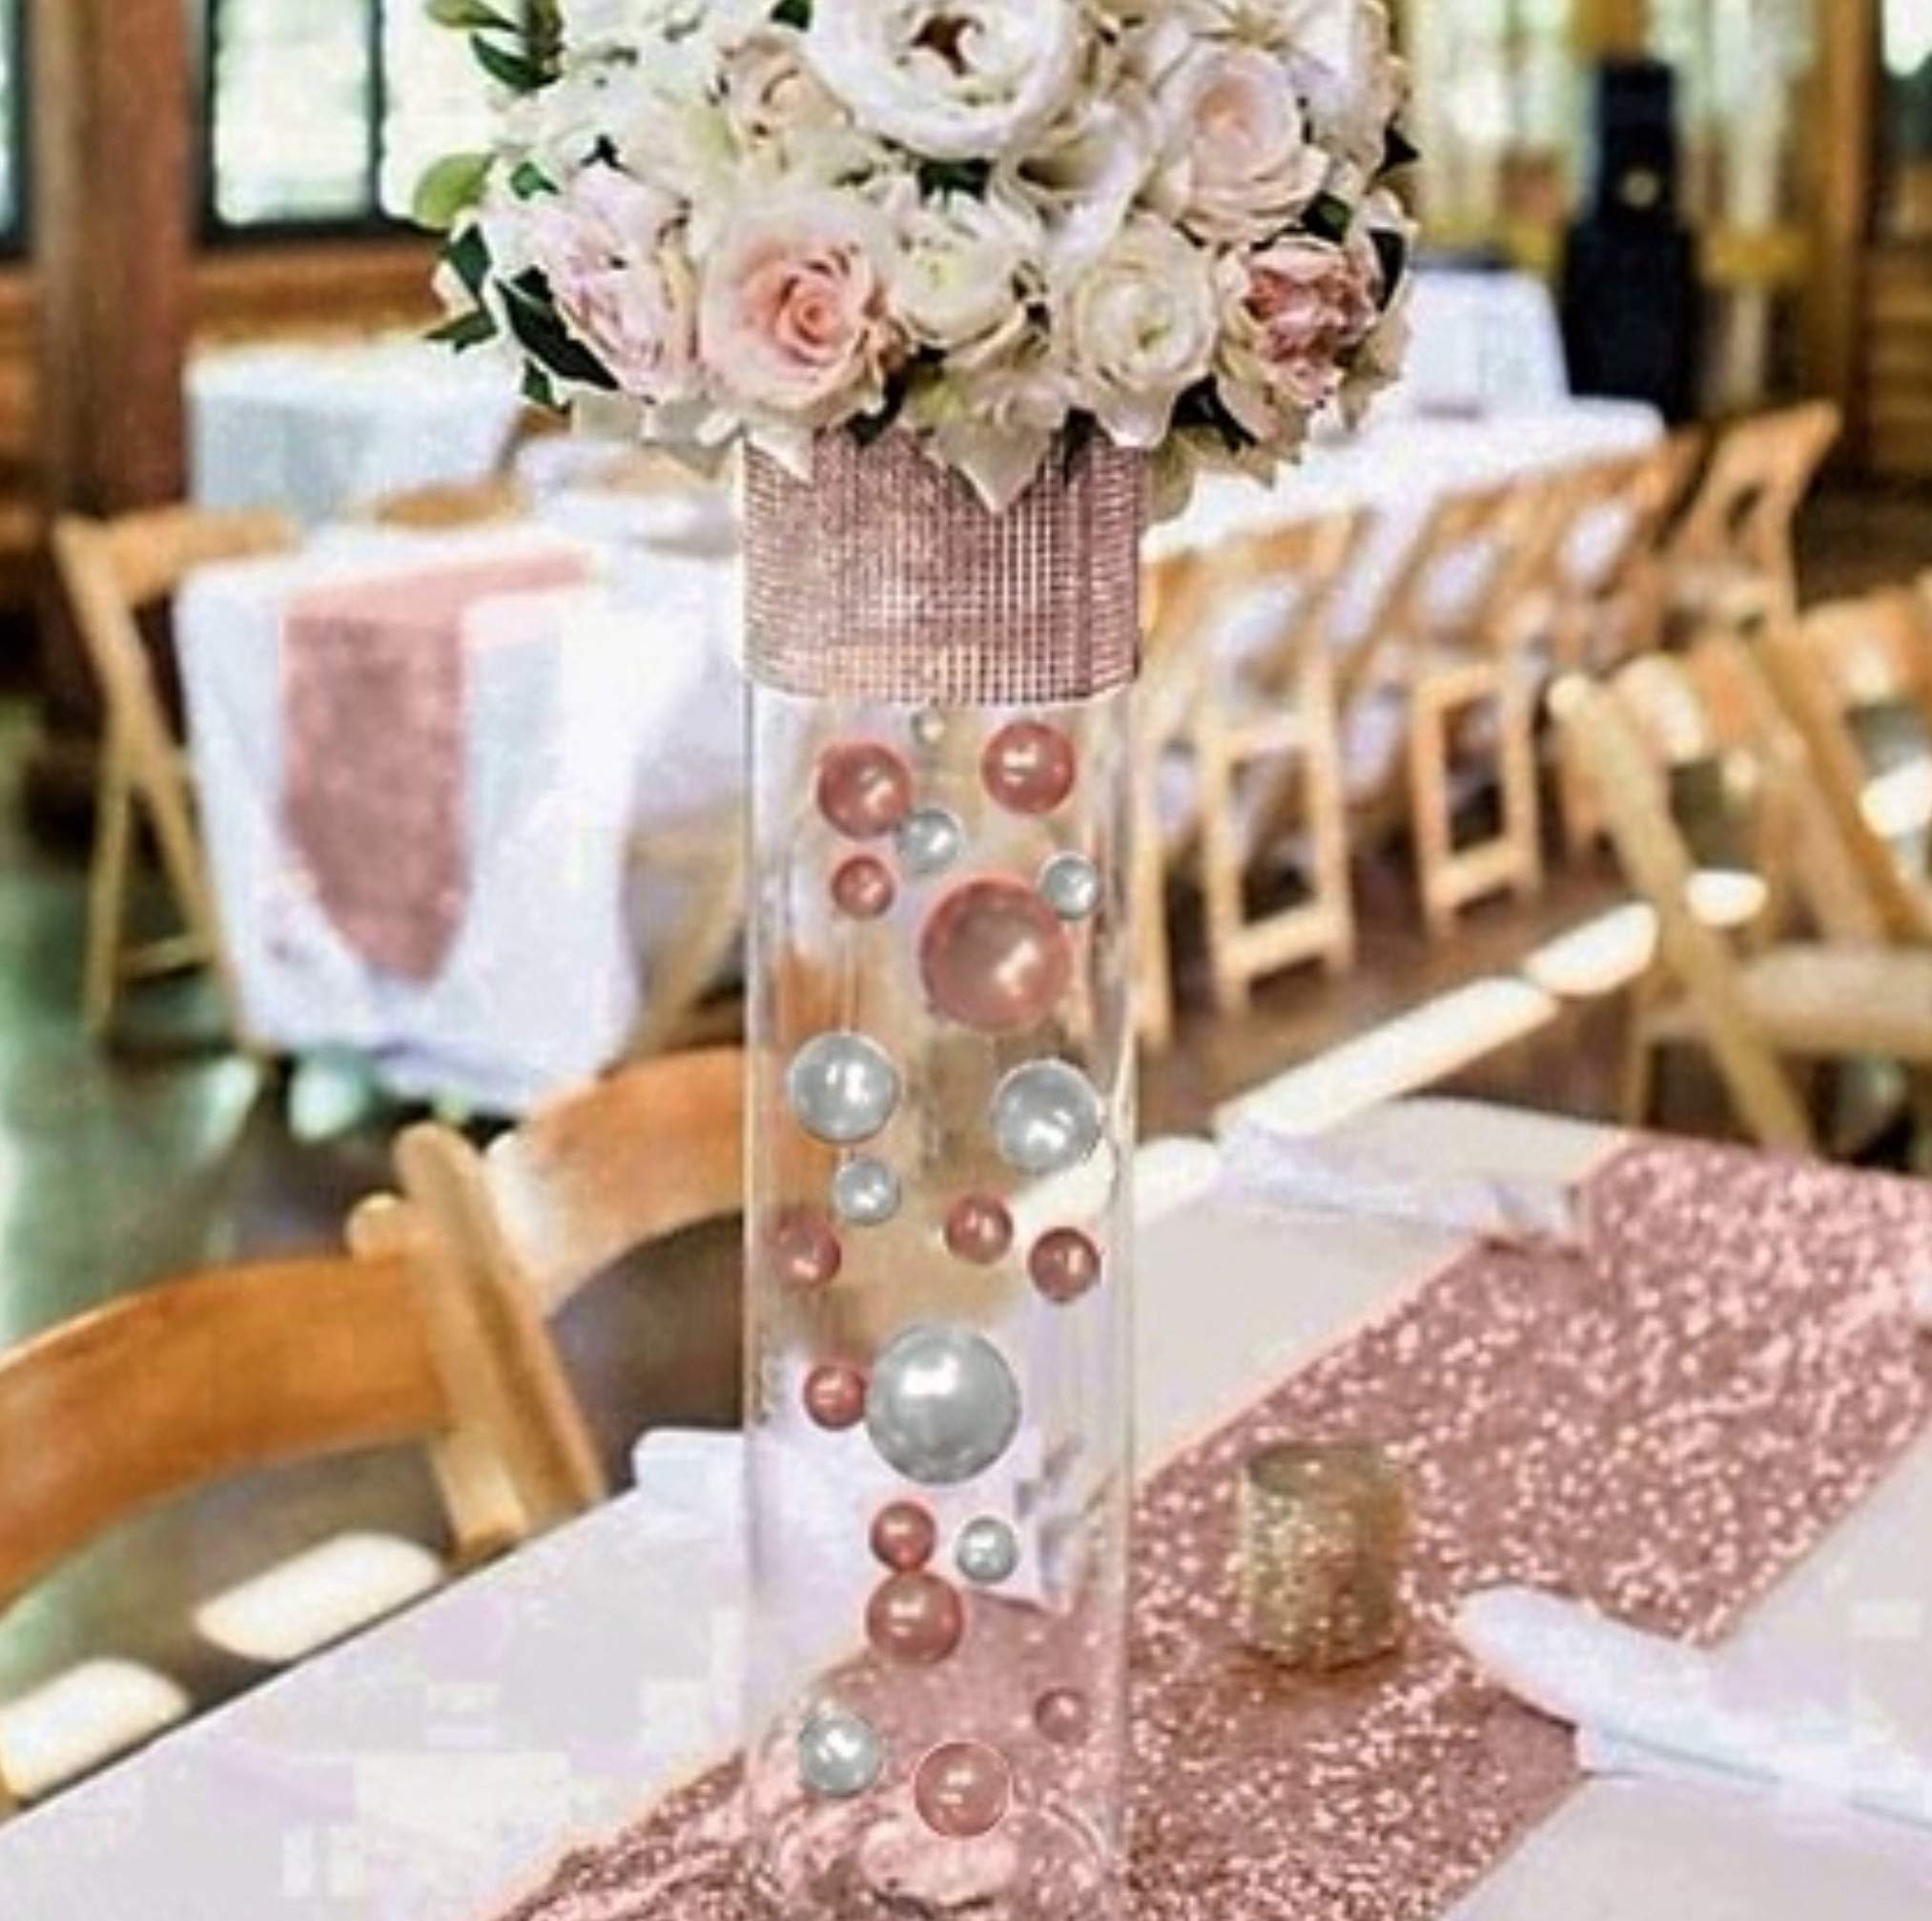 Floating No Hole Blush Light Pink/Rose Gold & White Pearls - Jumbo/Assorted Sizes Vase Decorations + Includes Transparent Water Gels for Floating The Pearls